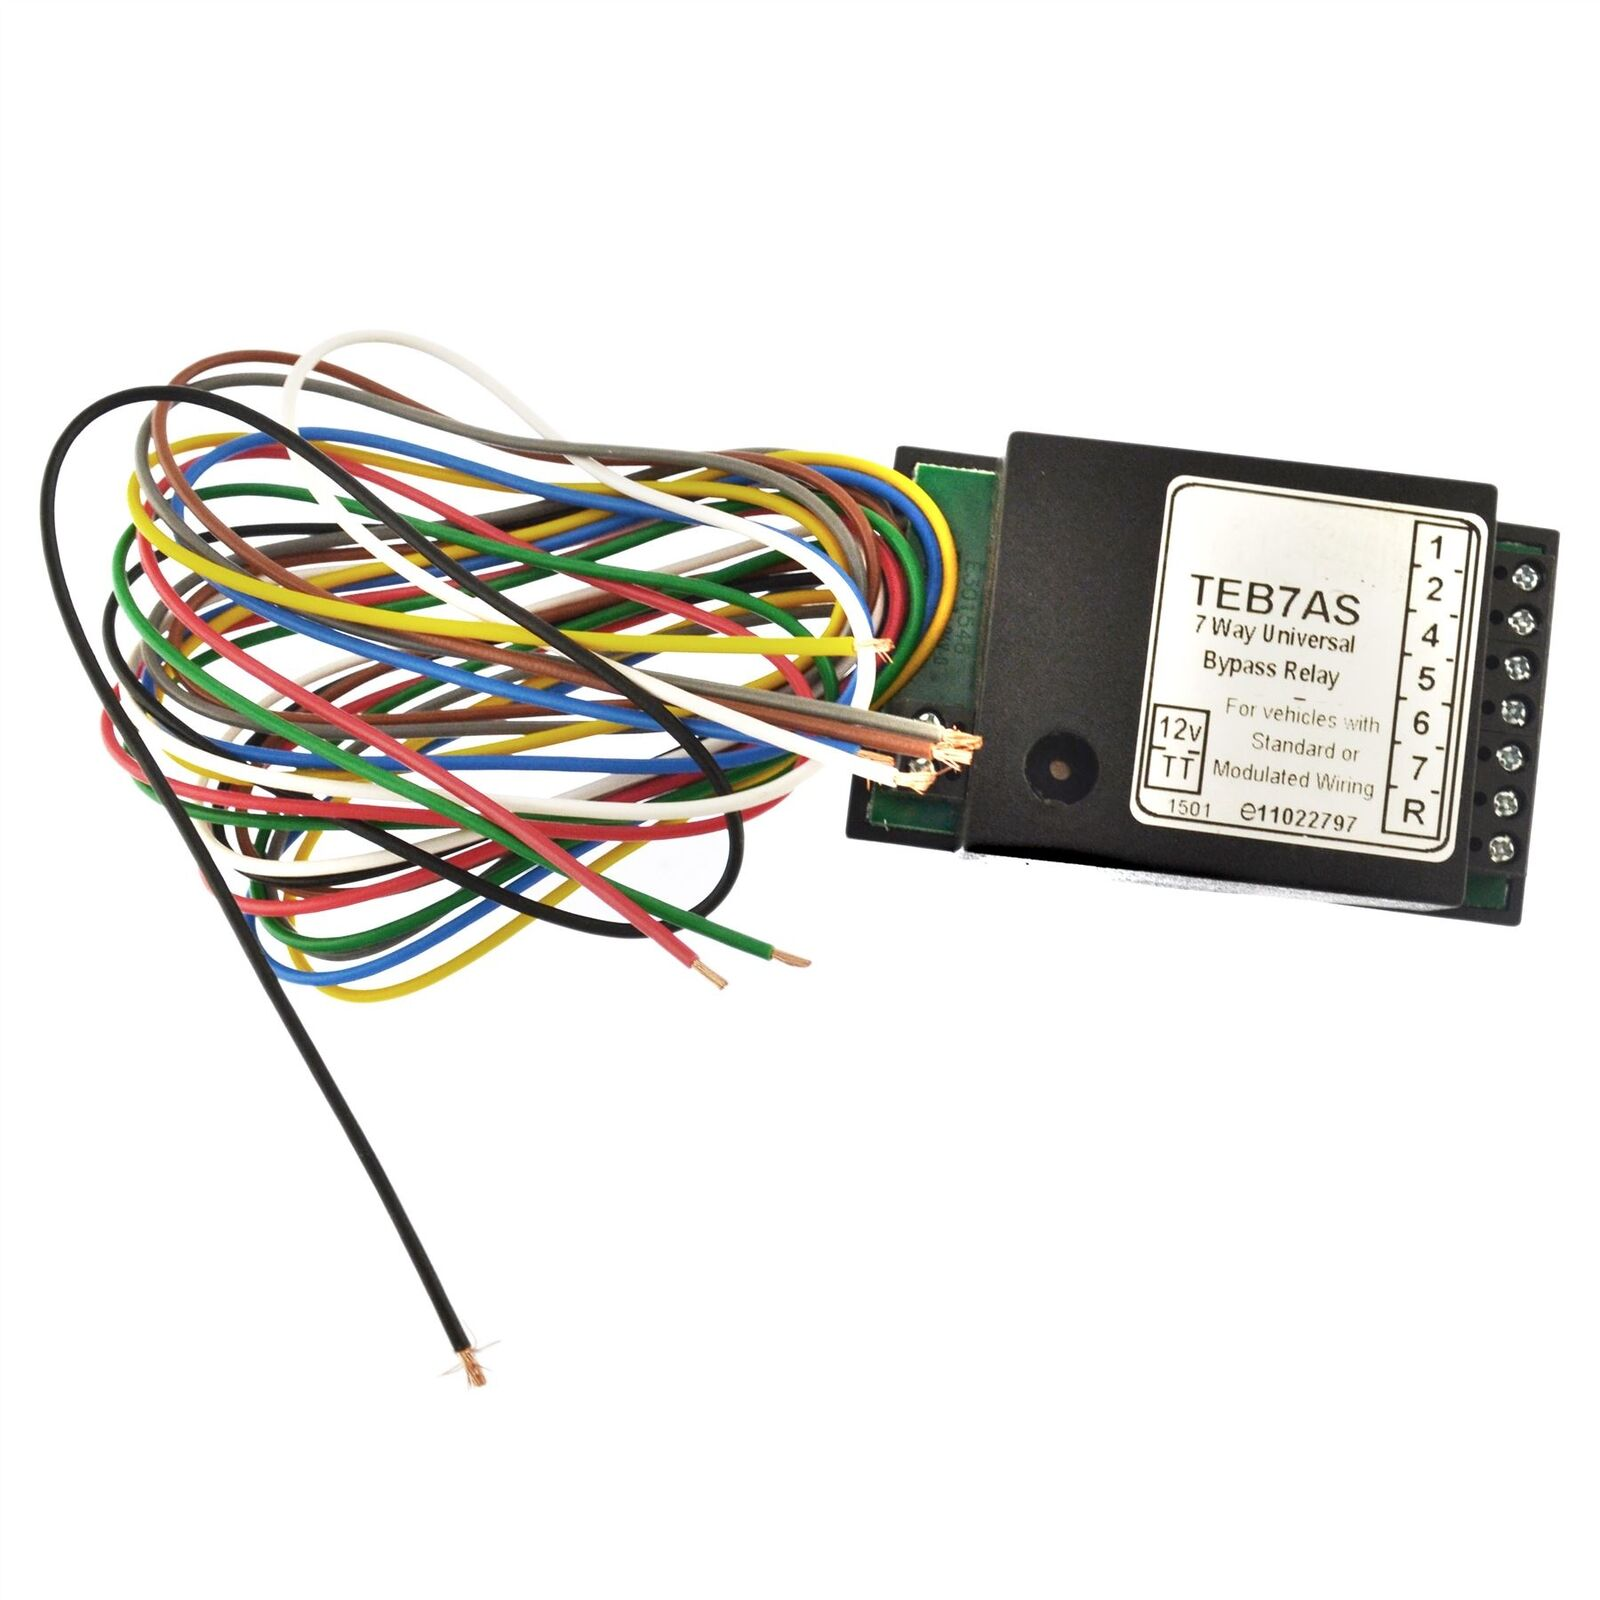 Towbar Electrics 7 Way Bypass Relay for Canbus towbar bypass relay wiring diagram efcaviation com towbar audible relay wiring diagram at panicattacktreatment.co